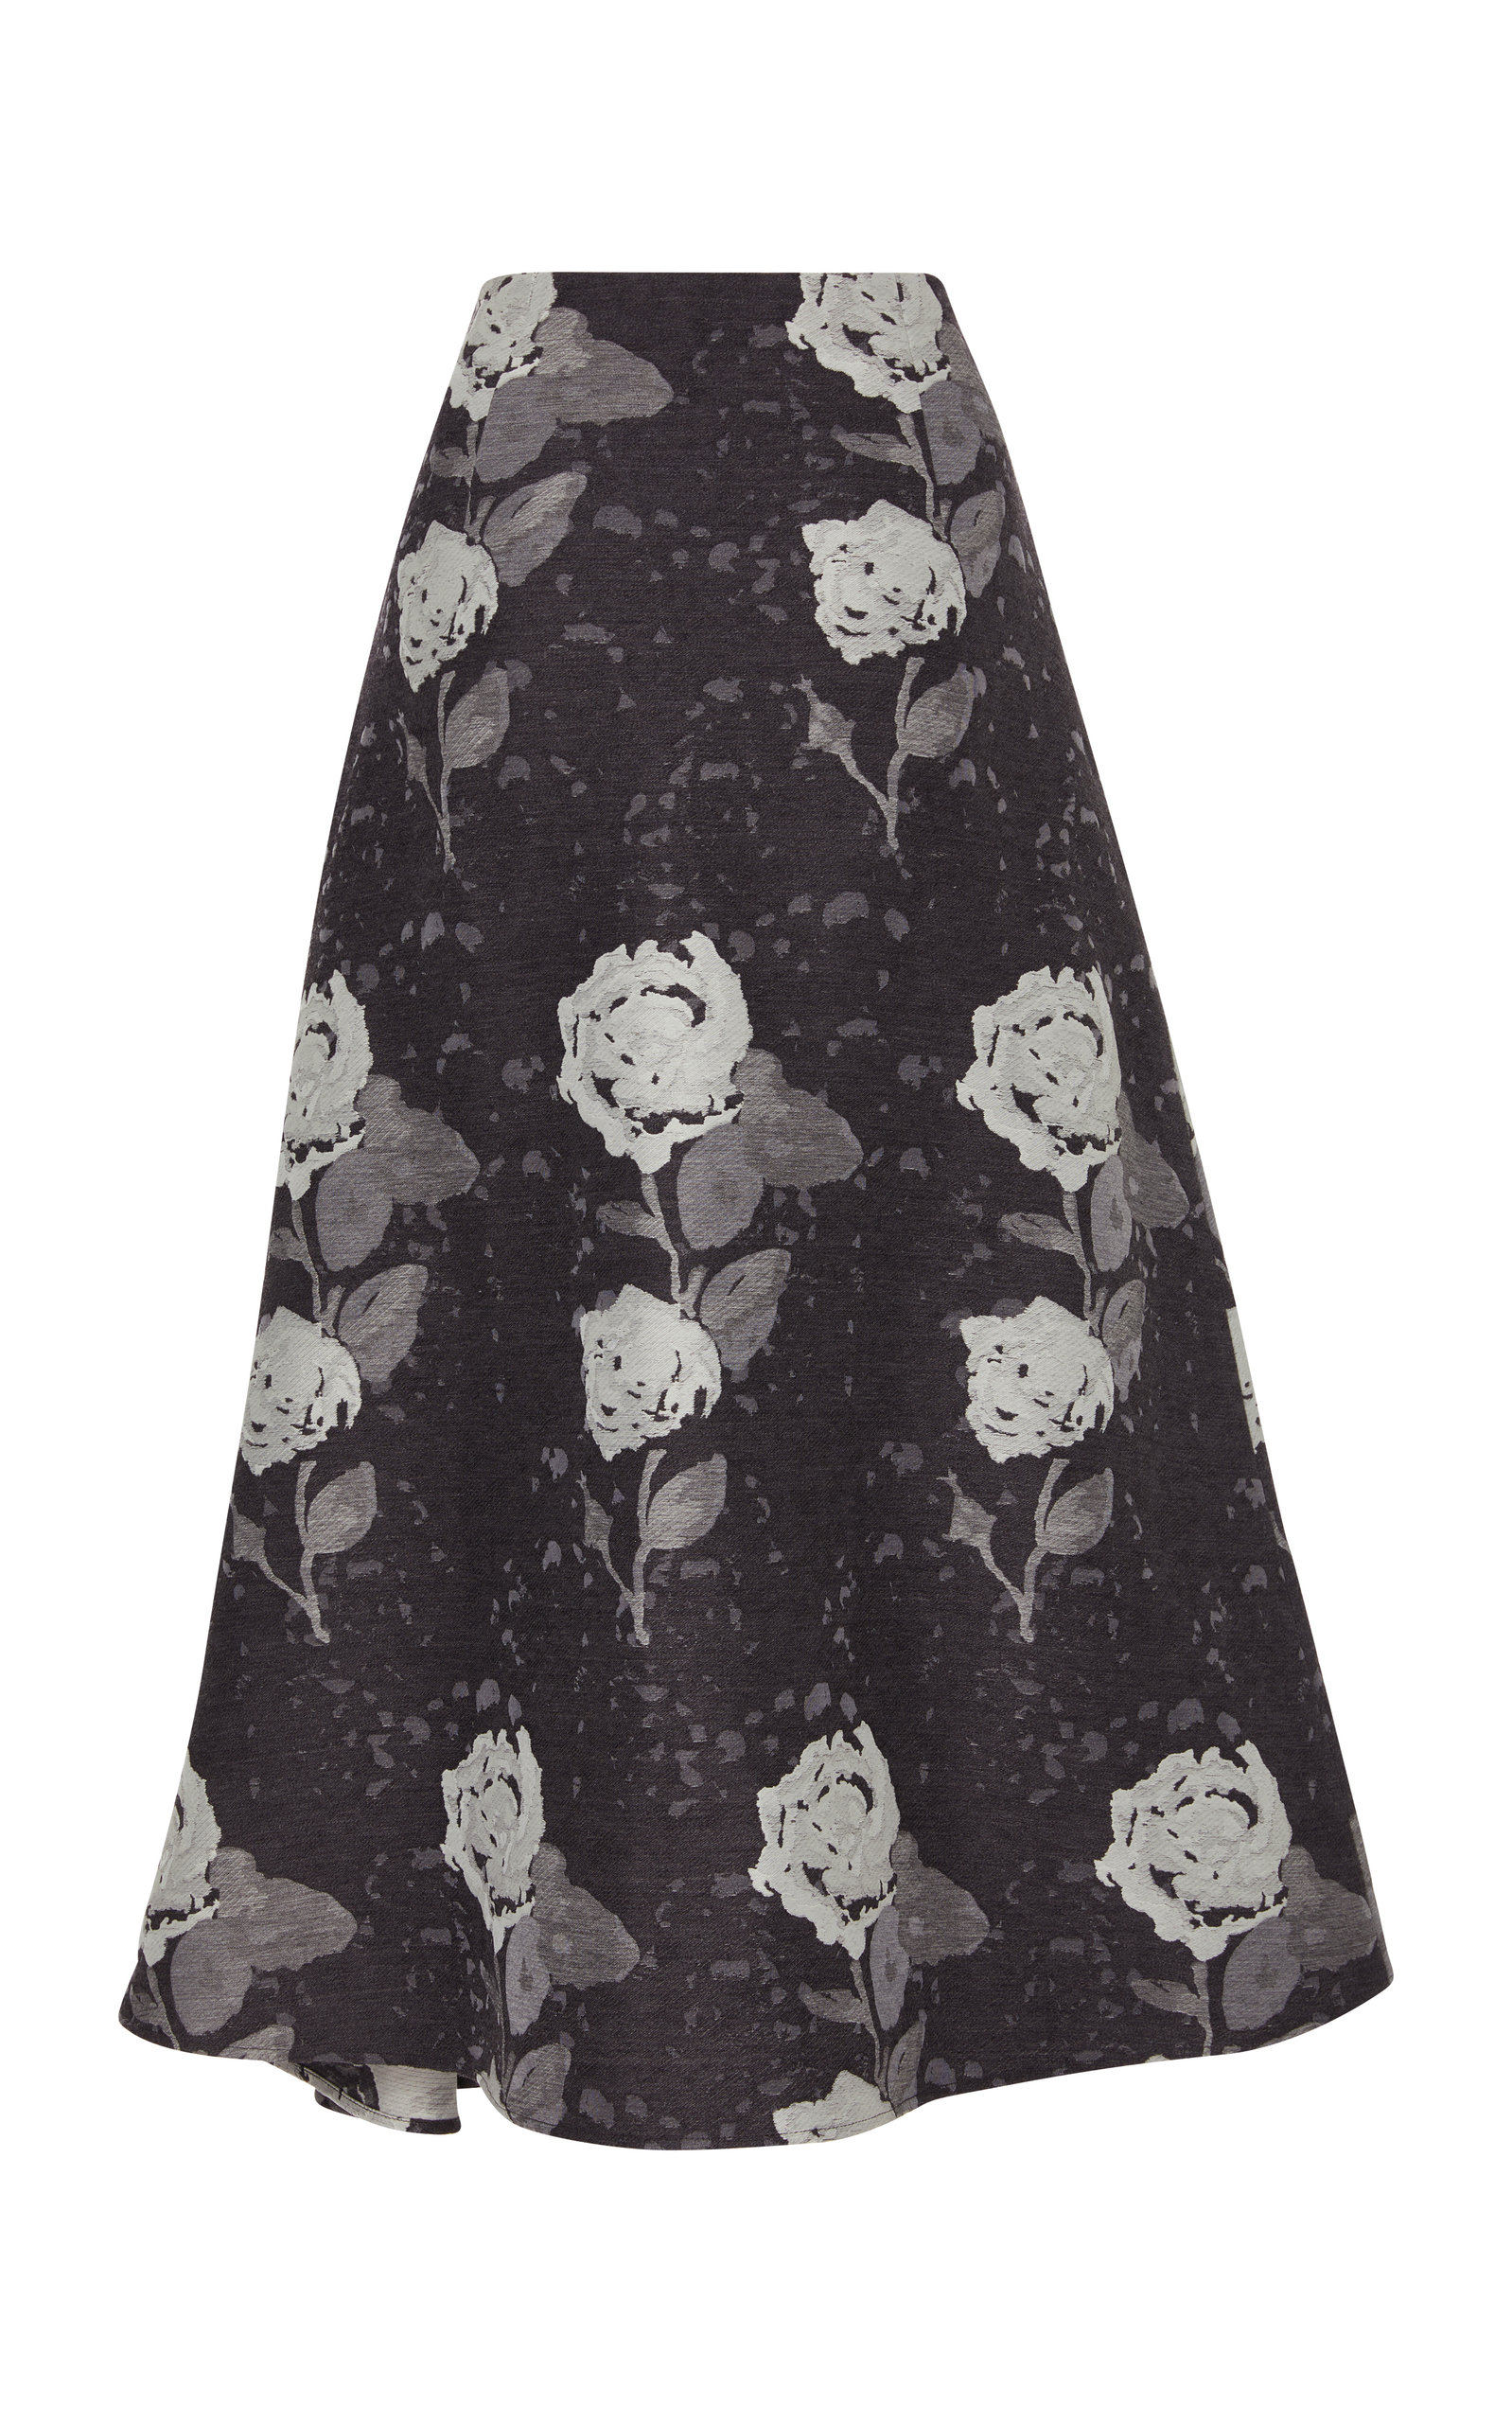 Floral Wool-Blend Midi Skirt Co Outlet Best Wholesale eezmoQNo